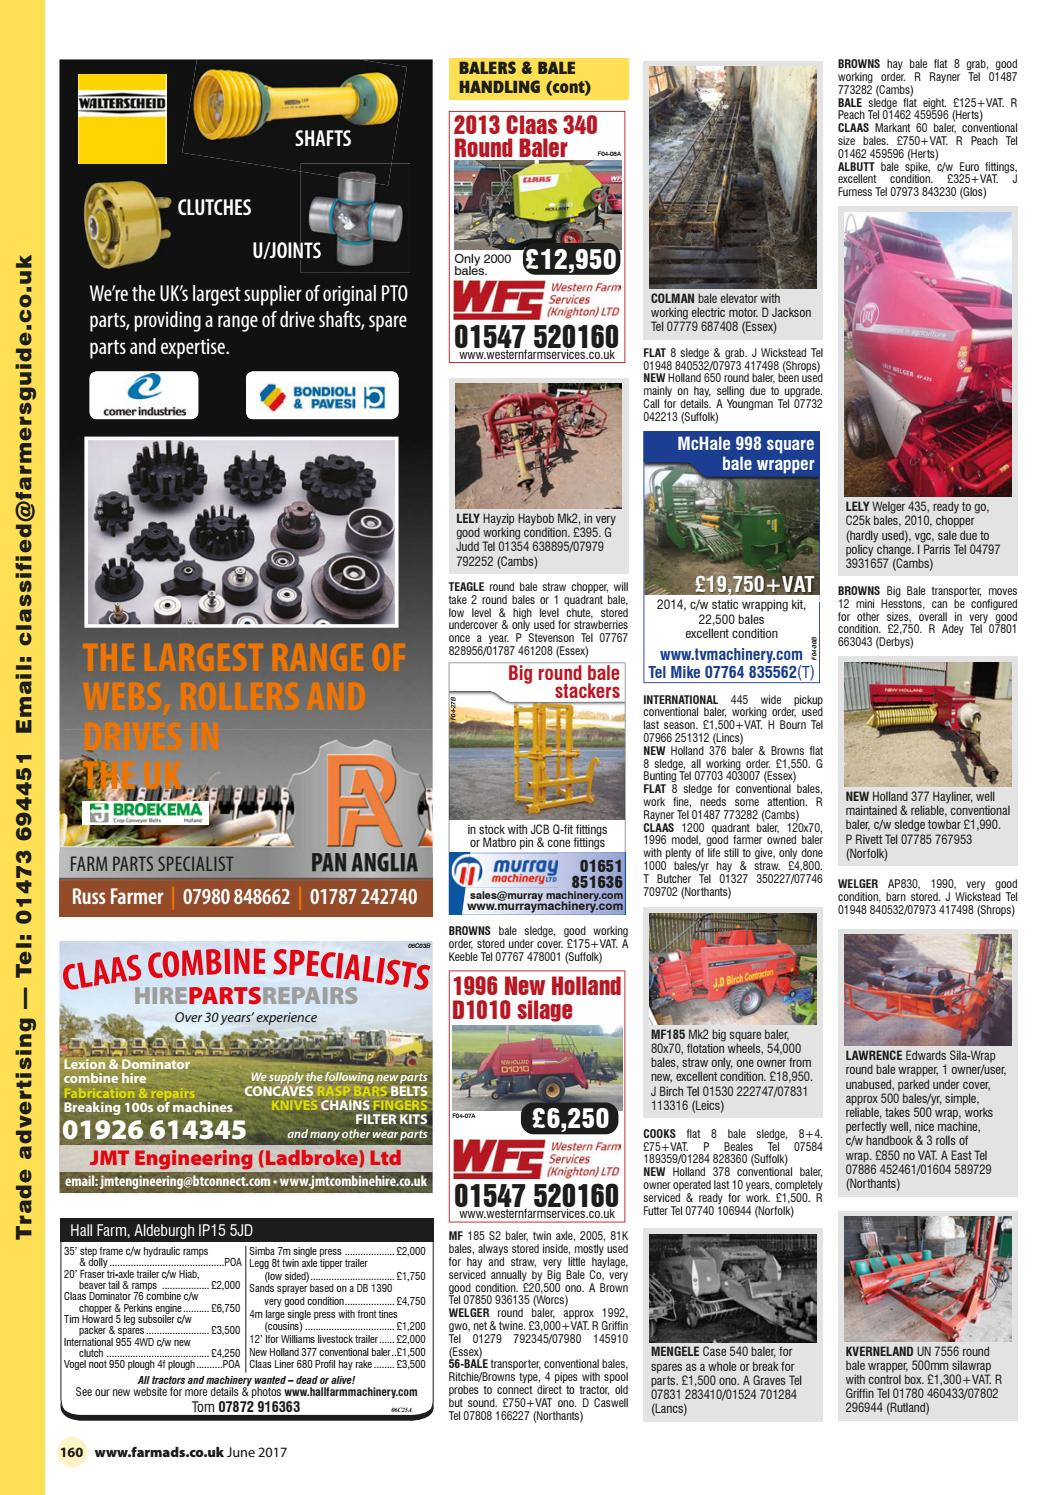 Farmers Guide June 2017 by Farmers Guide - issuu